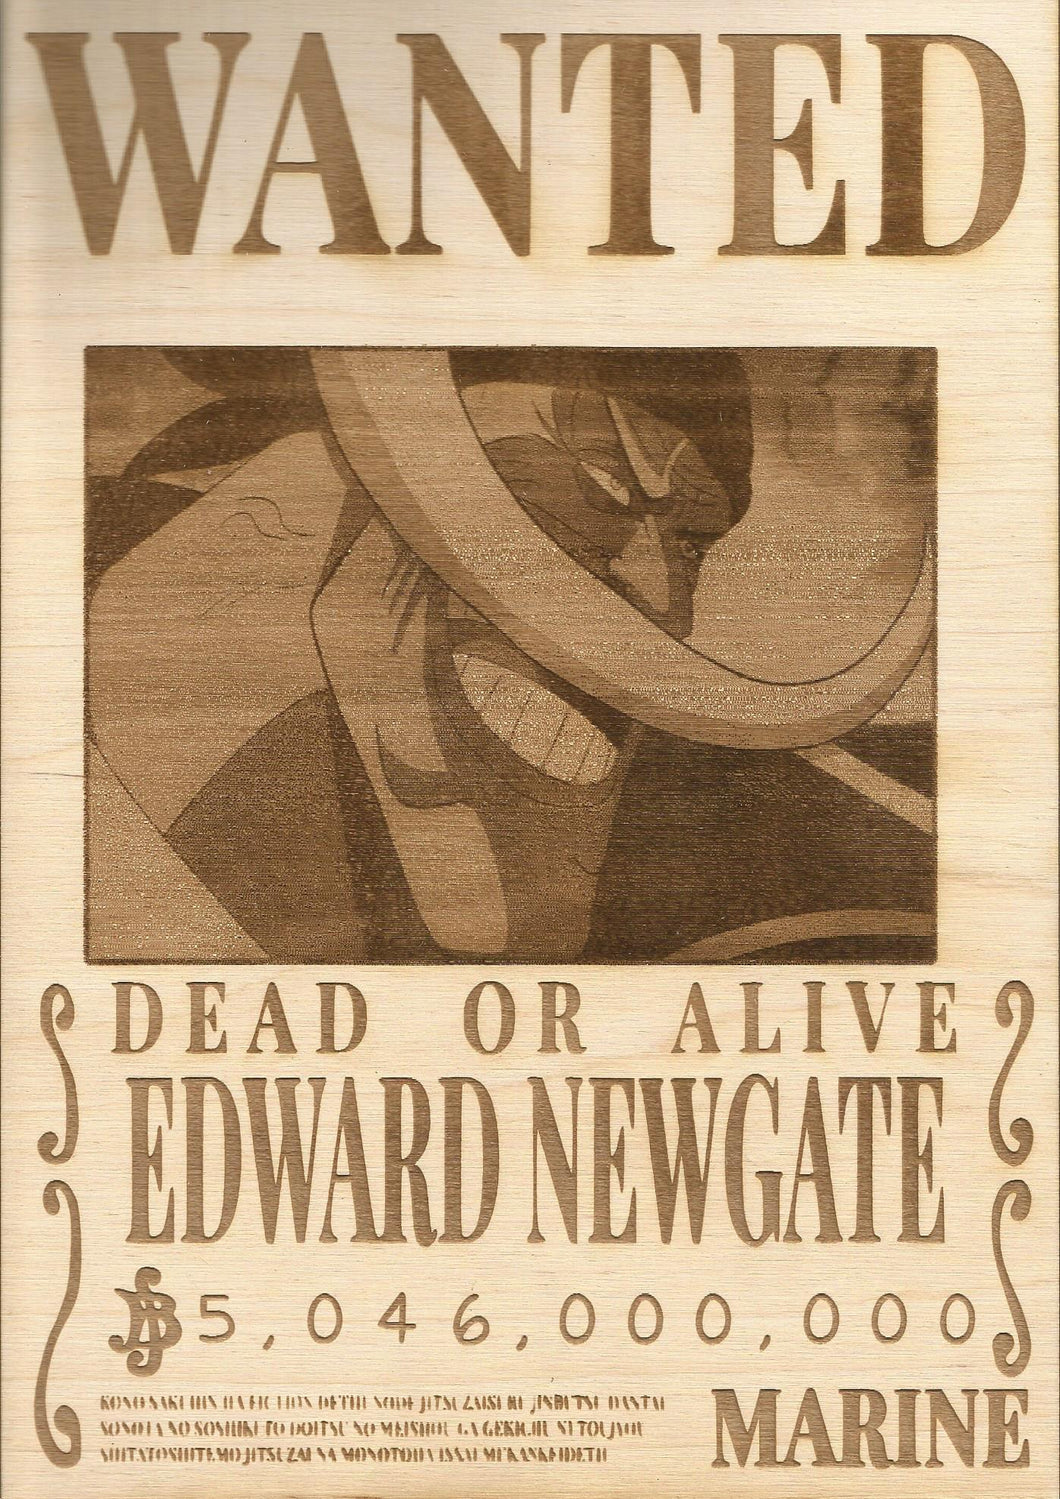 One Piece - White Beard (Edward Newgate) Wooden Wanted Poster